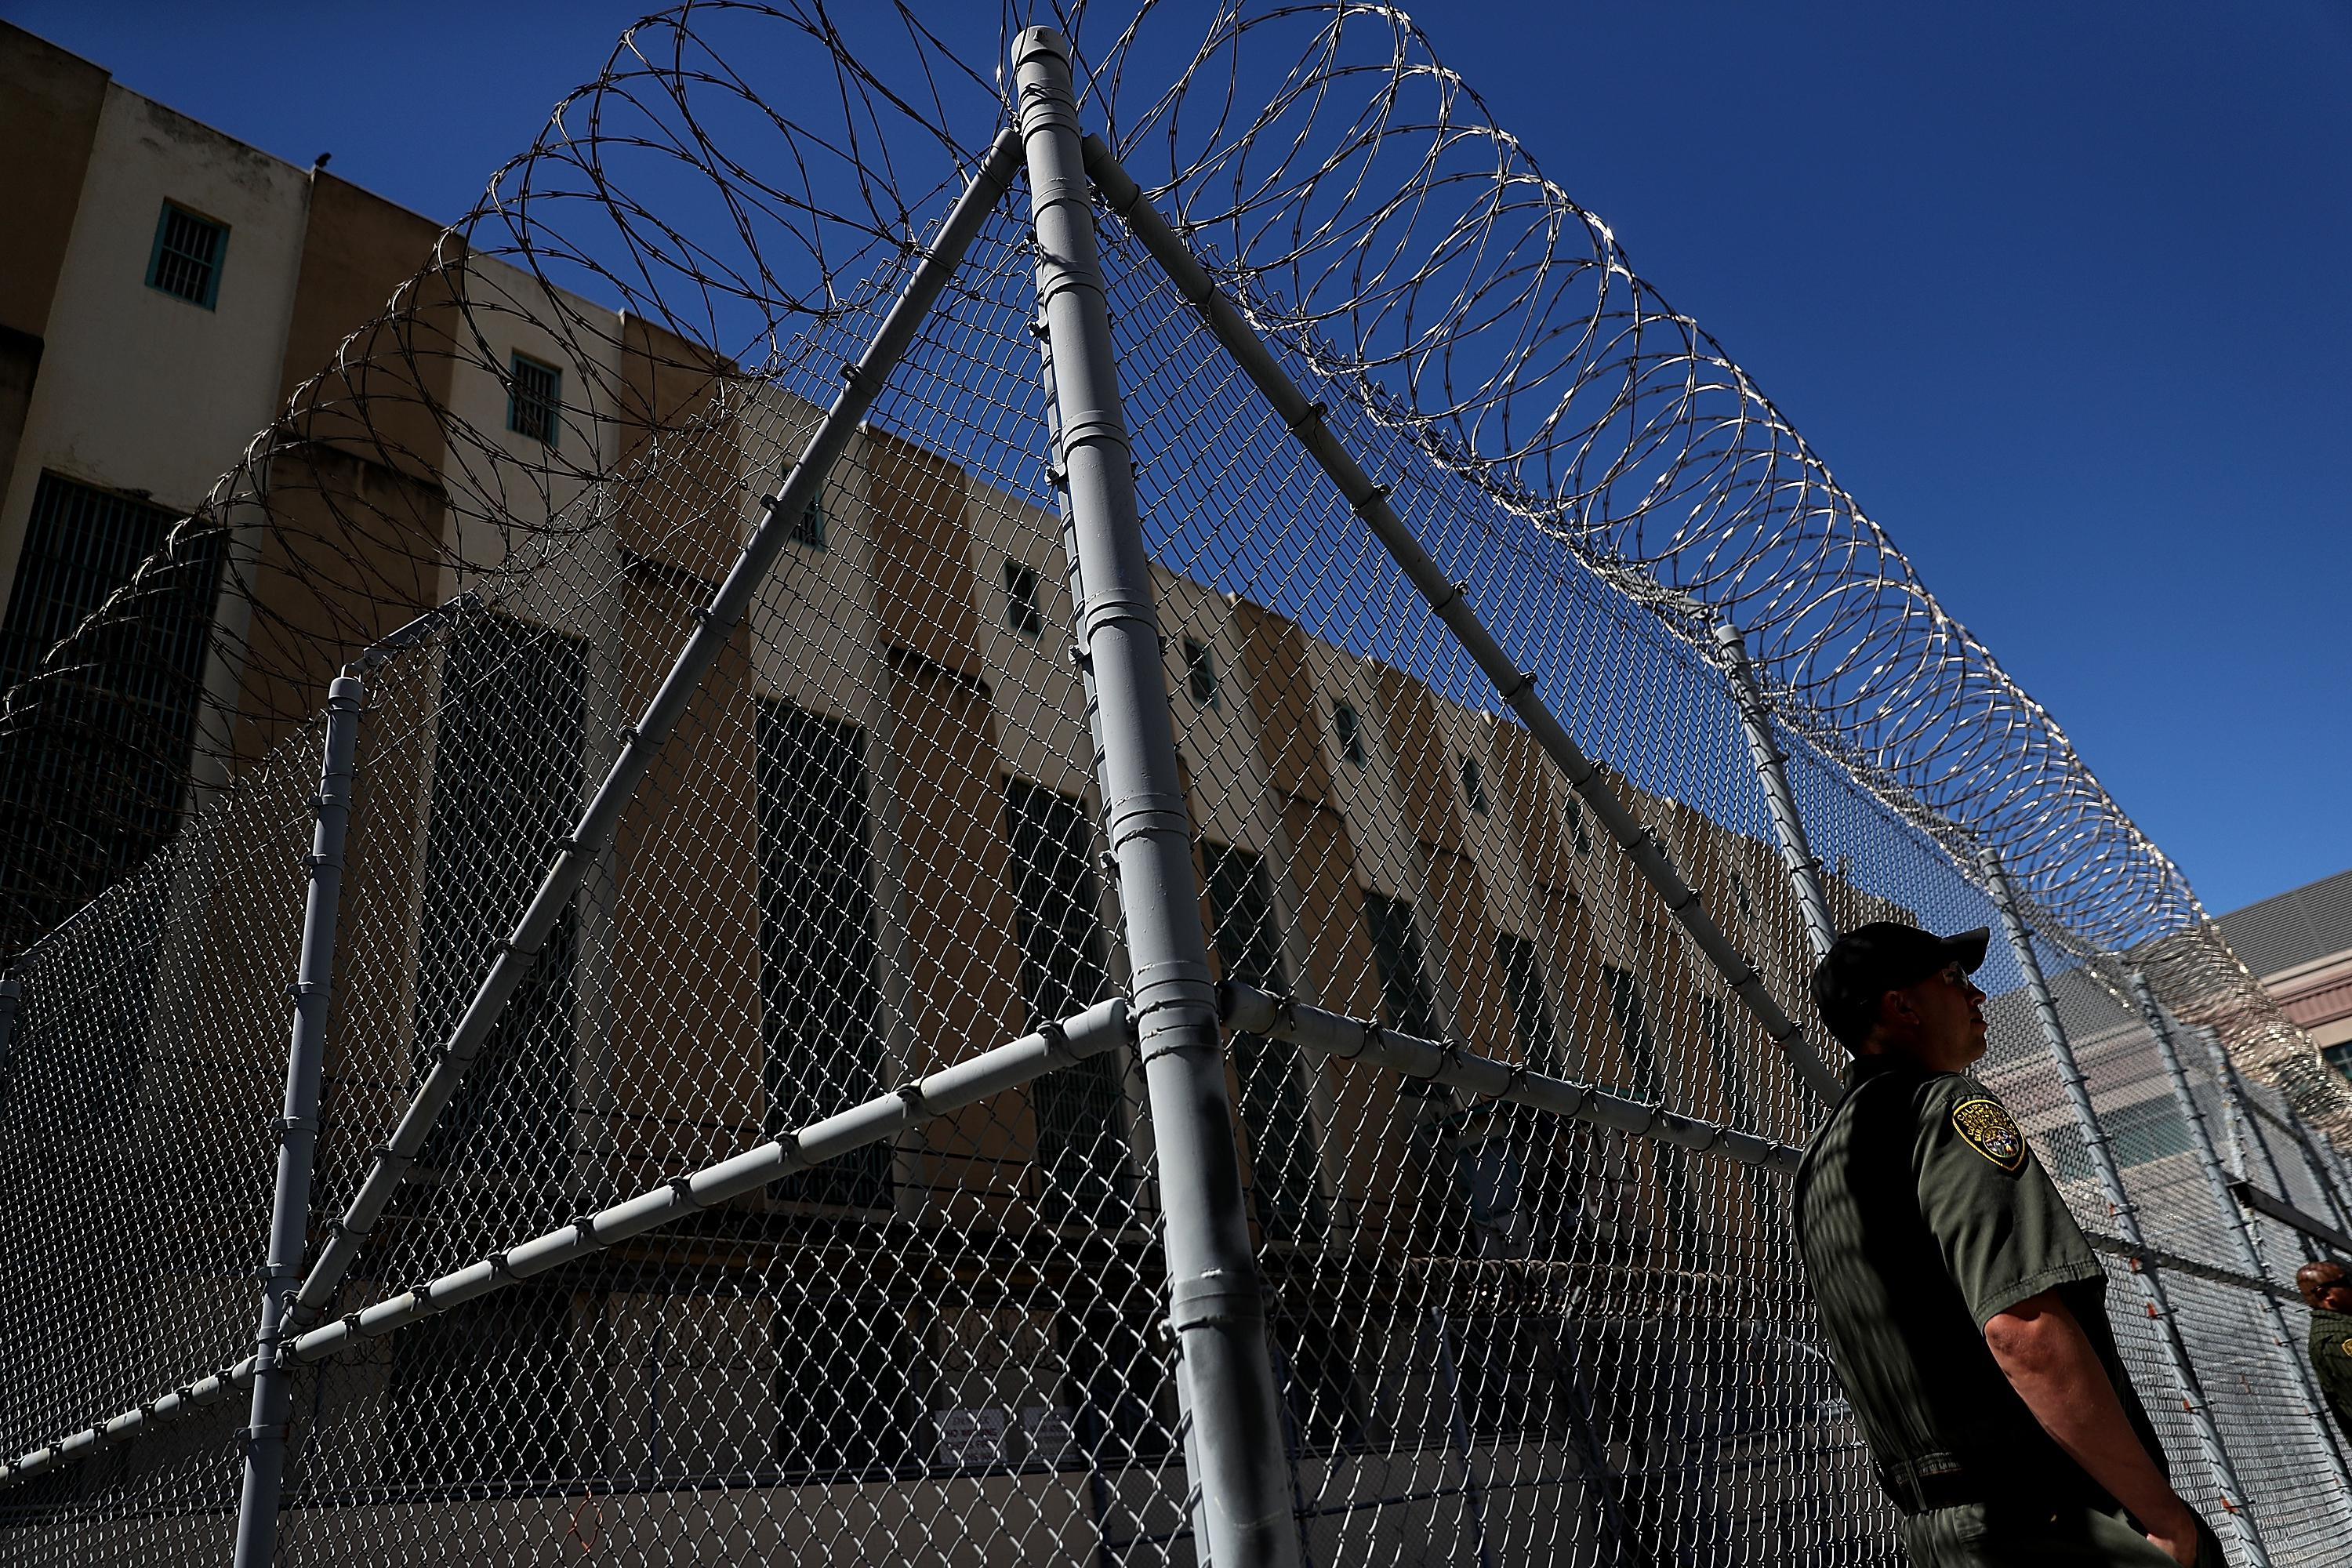 An officer stands guard at San Quentin State Prison on August 15, 2016 in San Quentin, California.